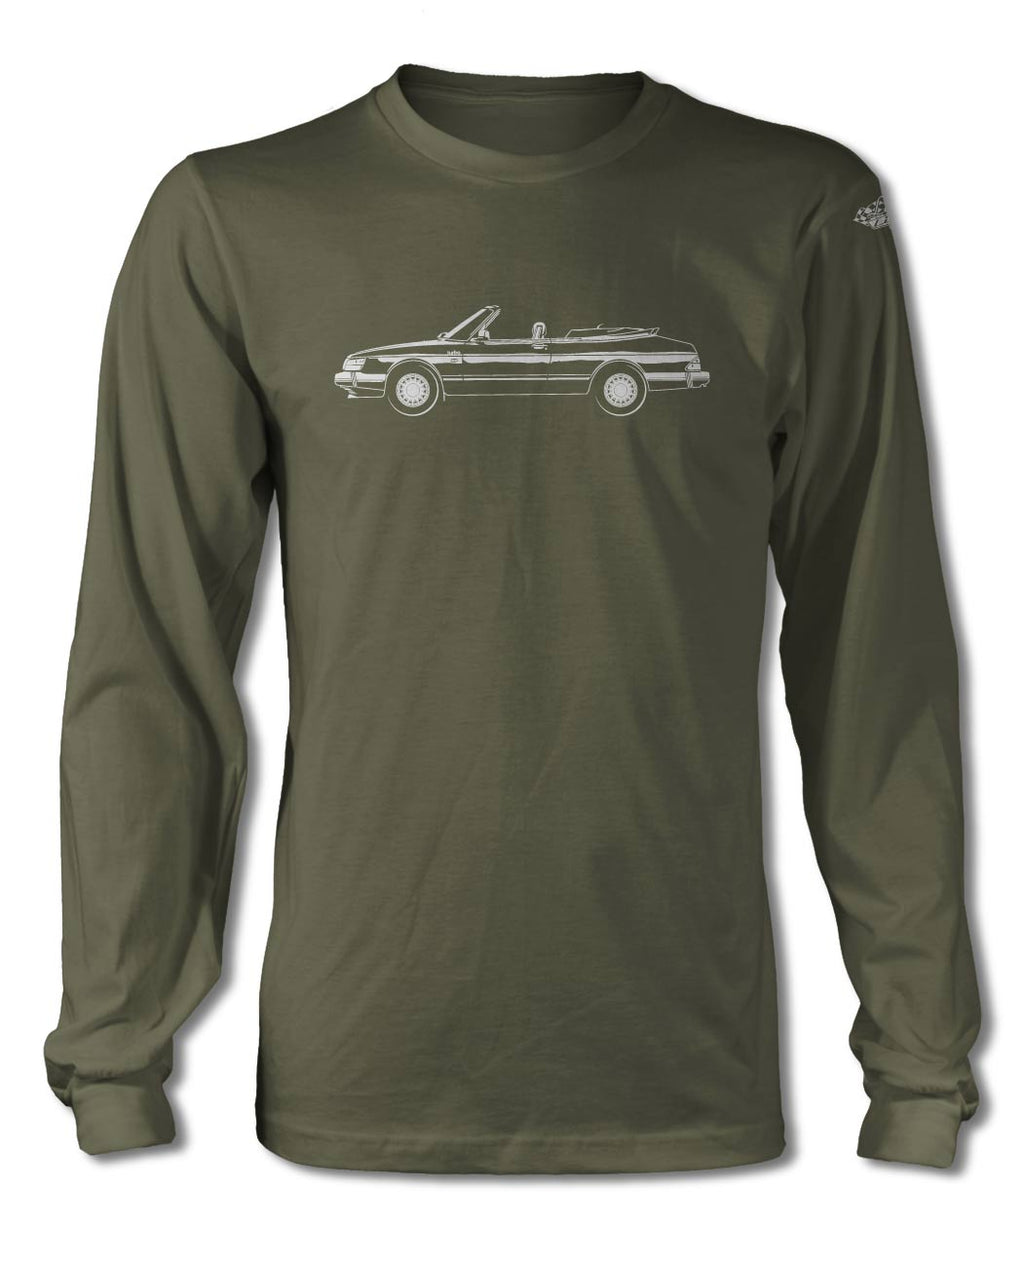 Saab 900 Turbo Convertible T-Shirt - Long Sleeves - Side View